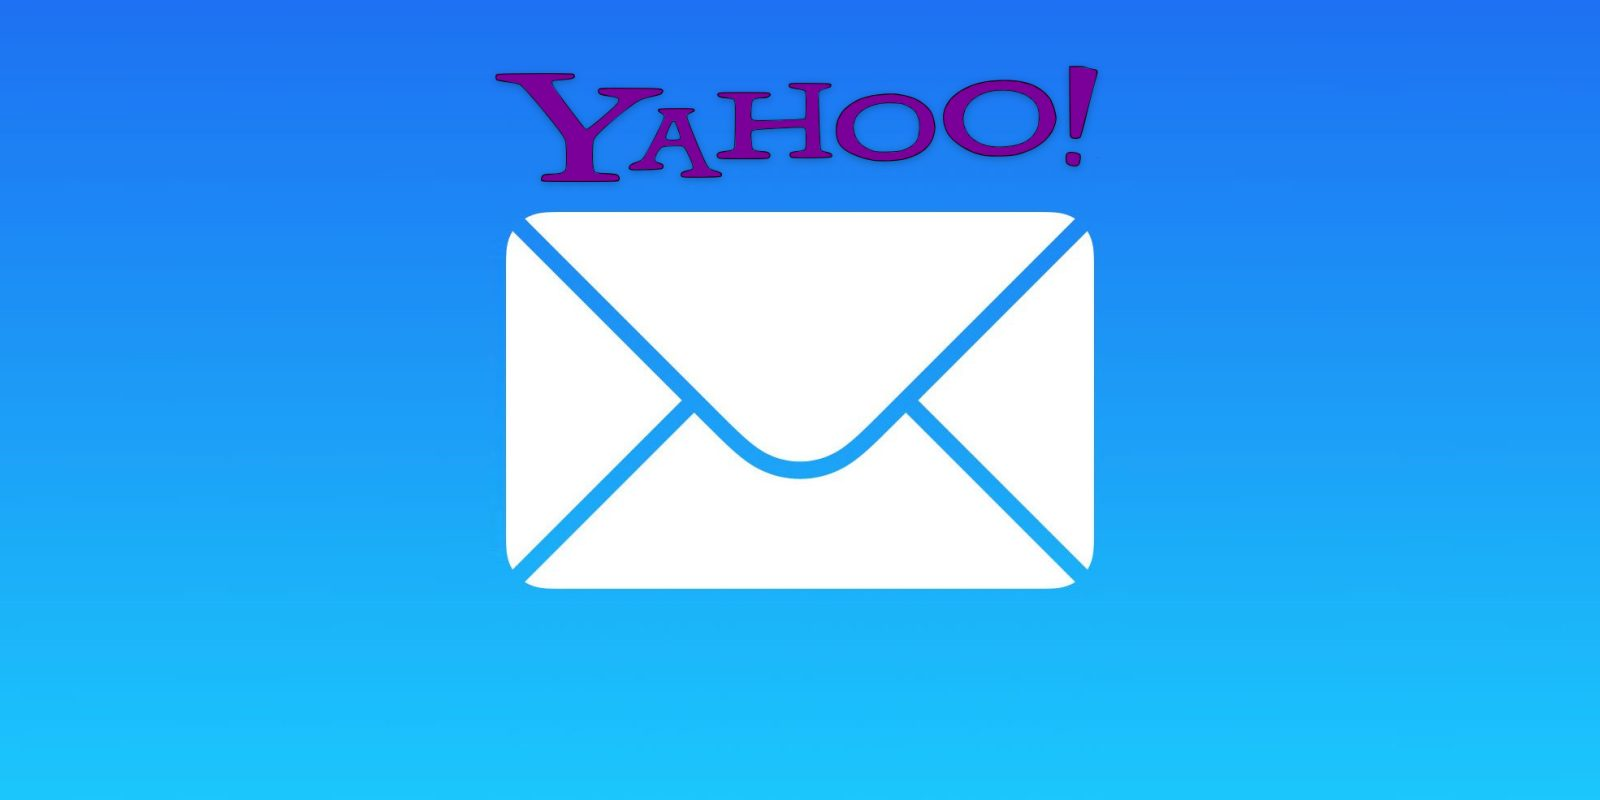 1 - 833 - 490 - 0999 Yahoo mail not working